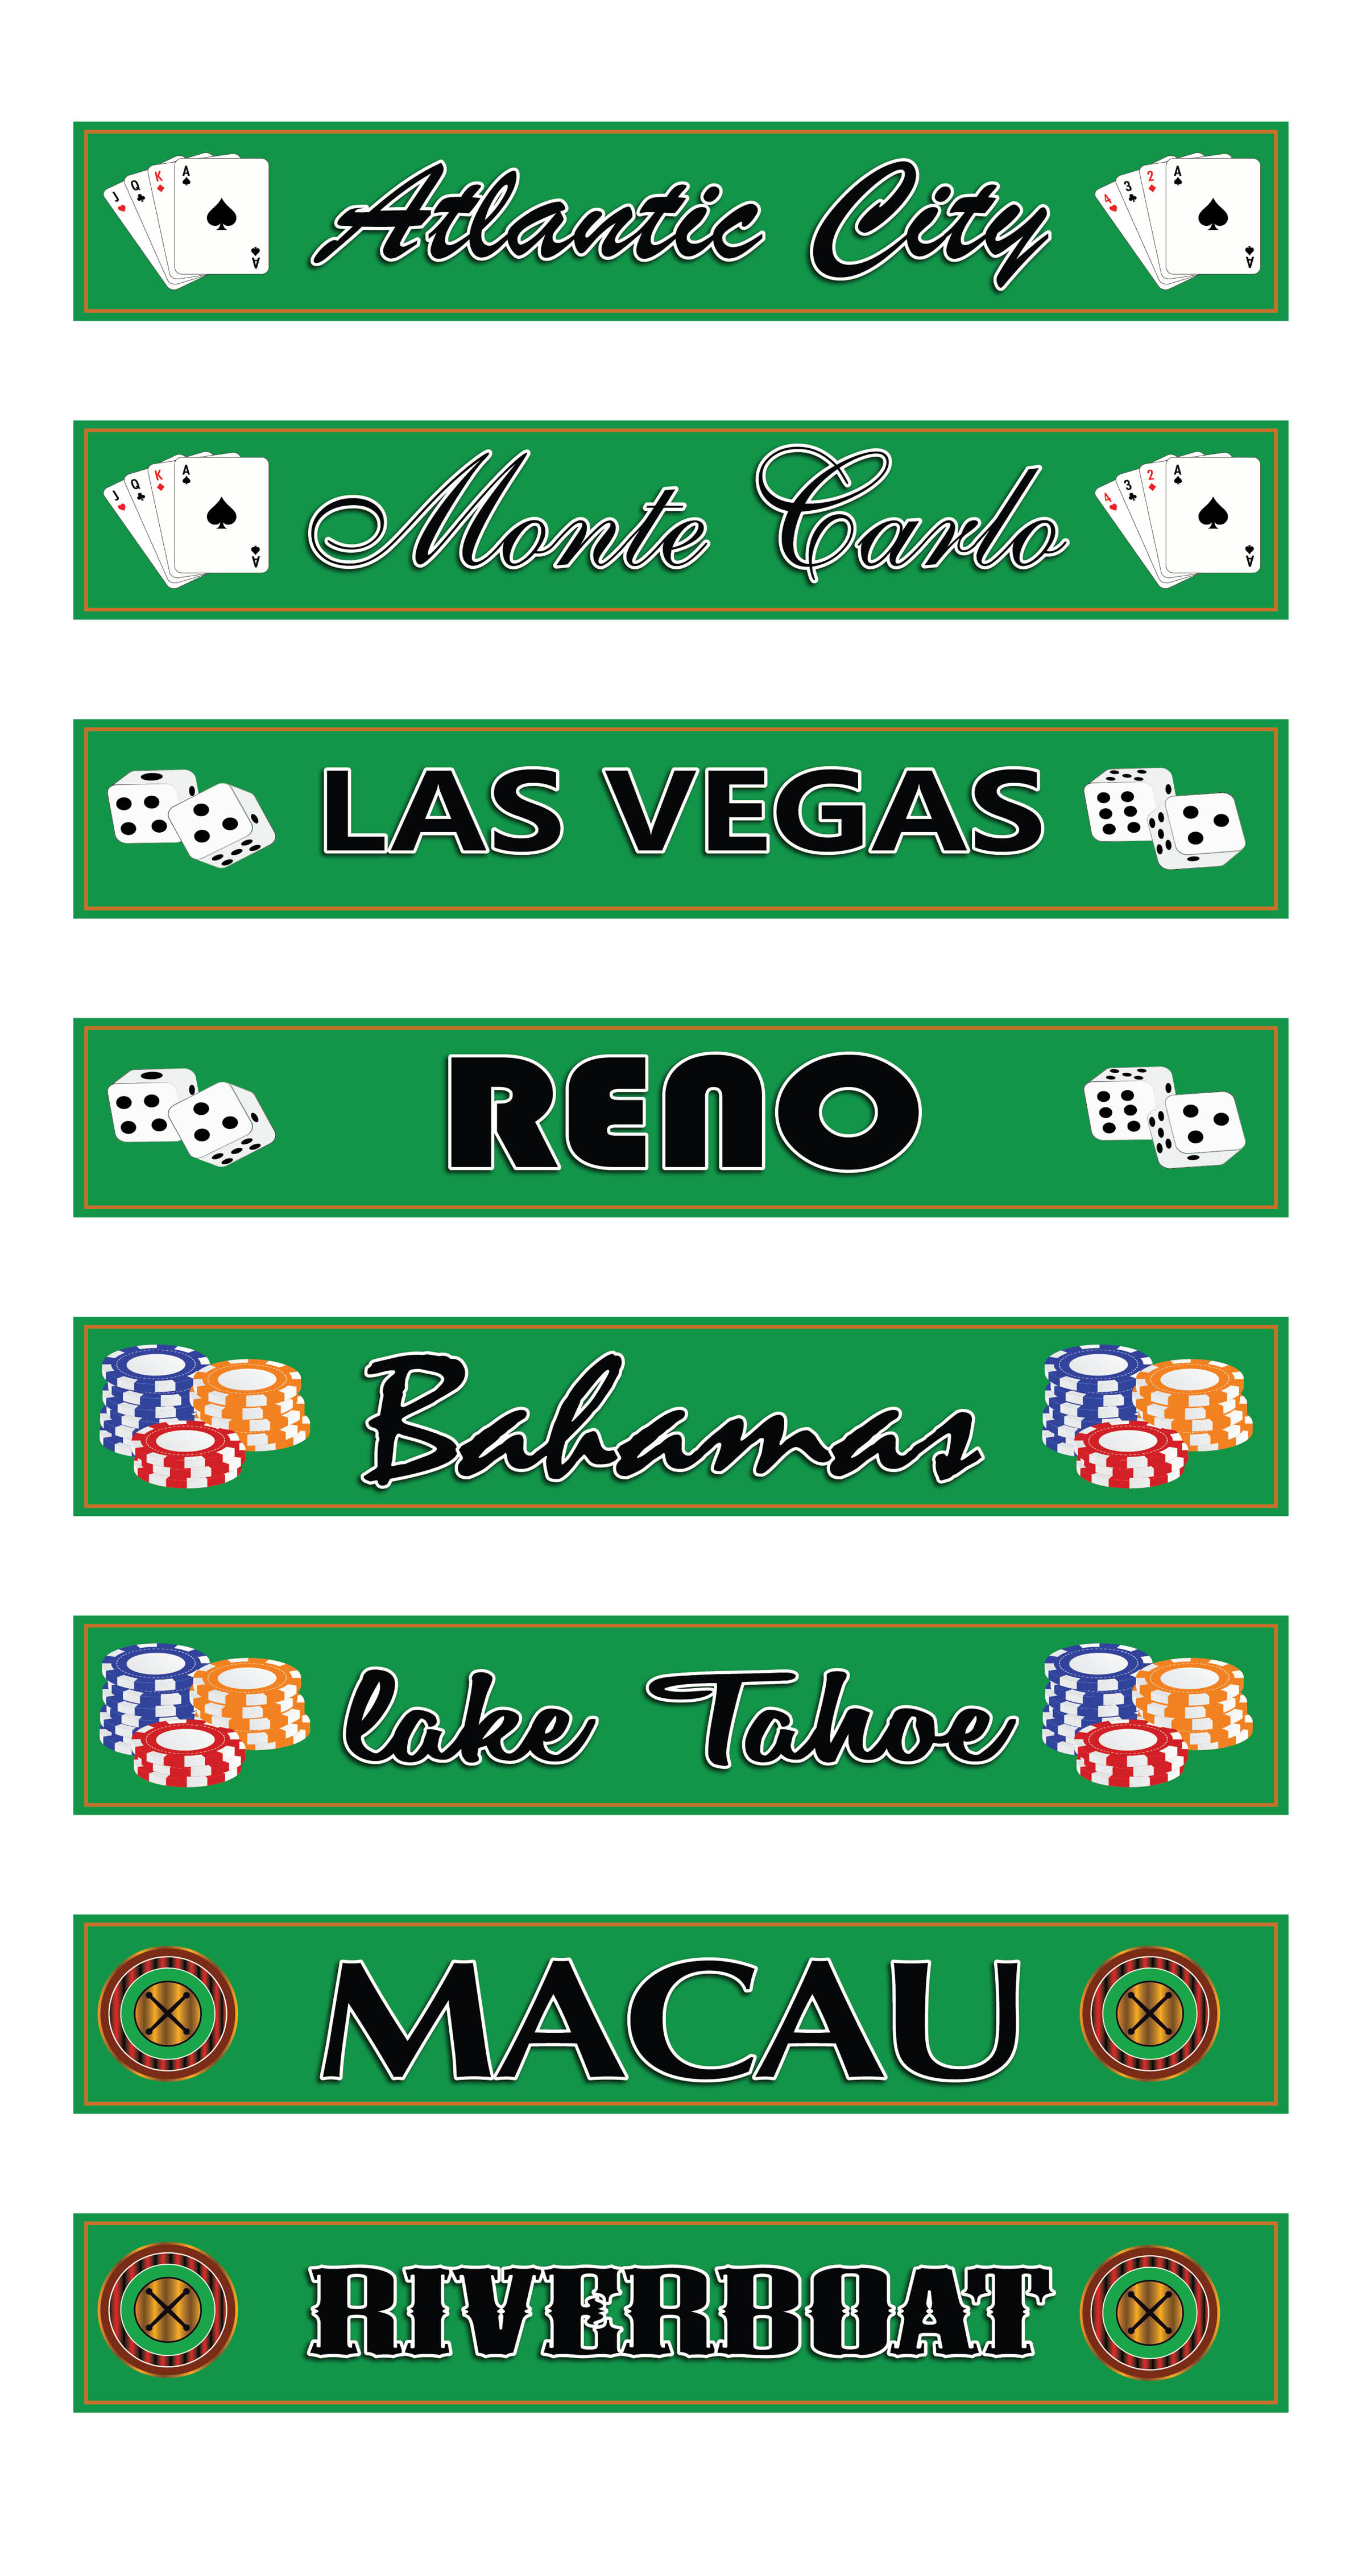 Worldwide Casinos PVC Party Sign Decorations 60cm x 10cm - Pack of 8 Product Image